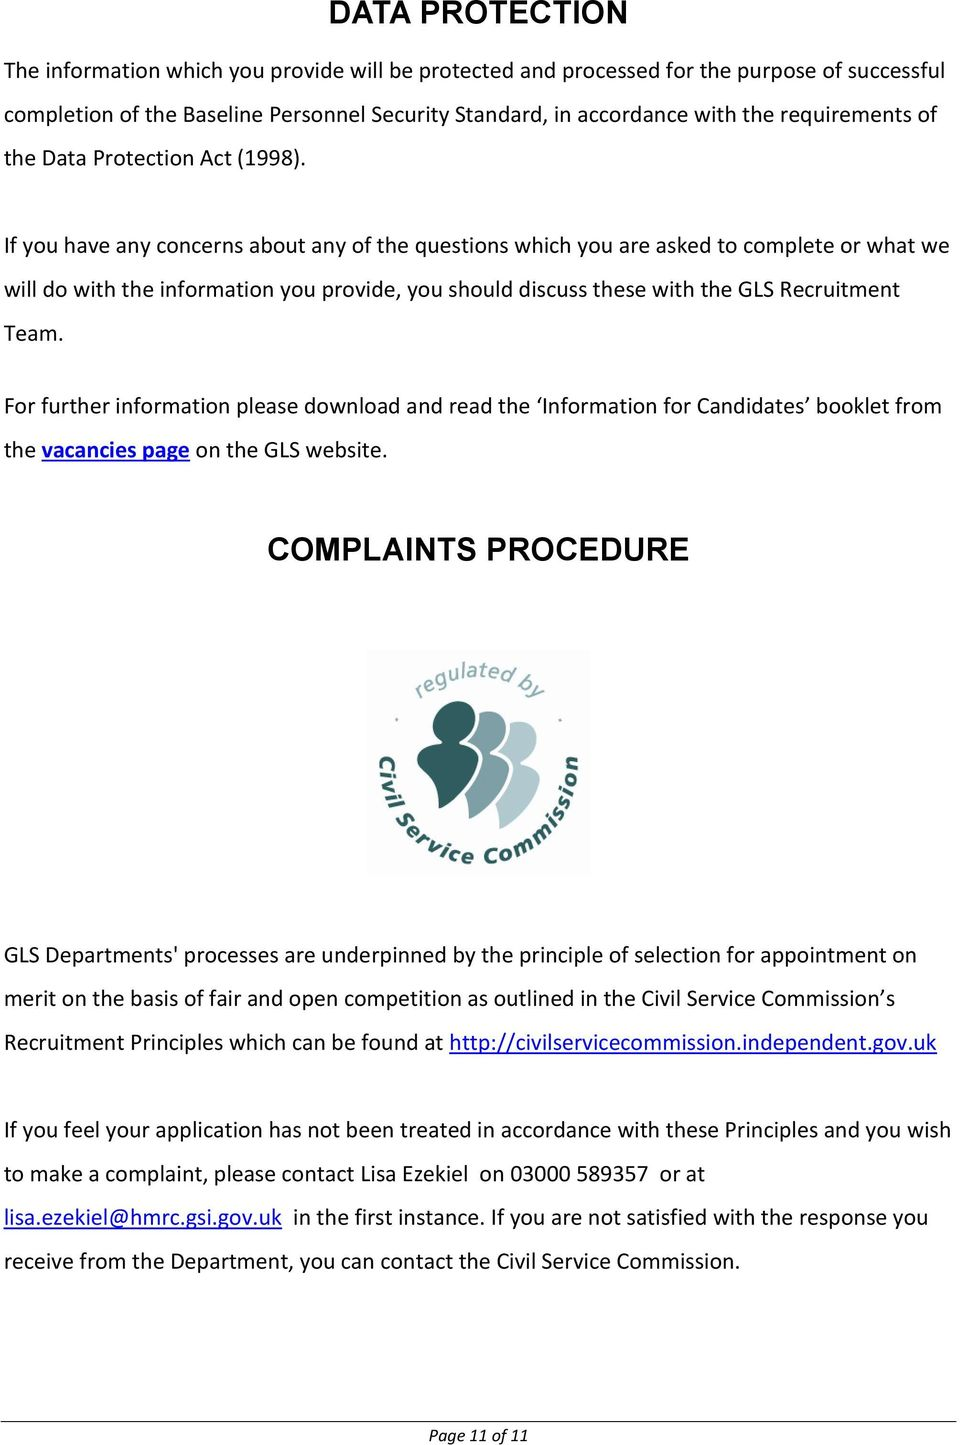 If you have any concerns about any of the questions which you are asked to complete or what we will do with the information you provide, you should discuss these with the GLS Recruitment Team.